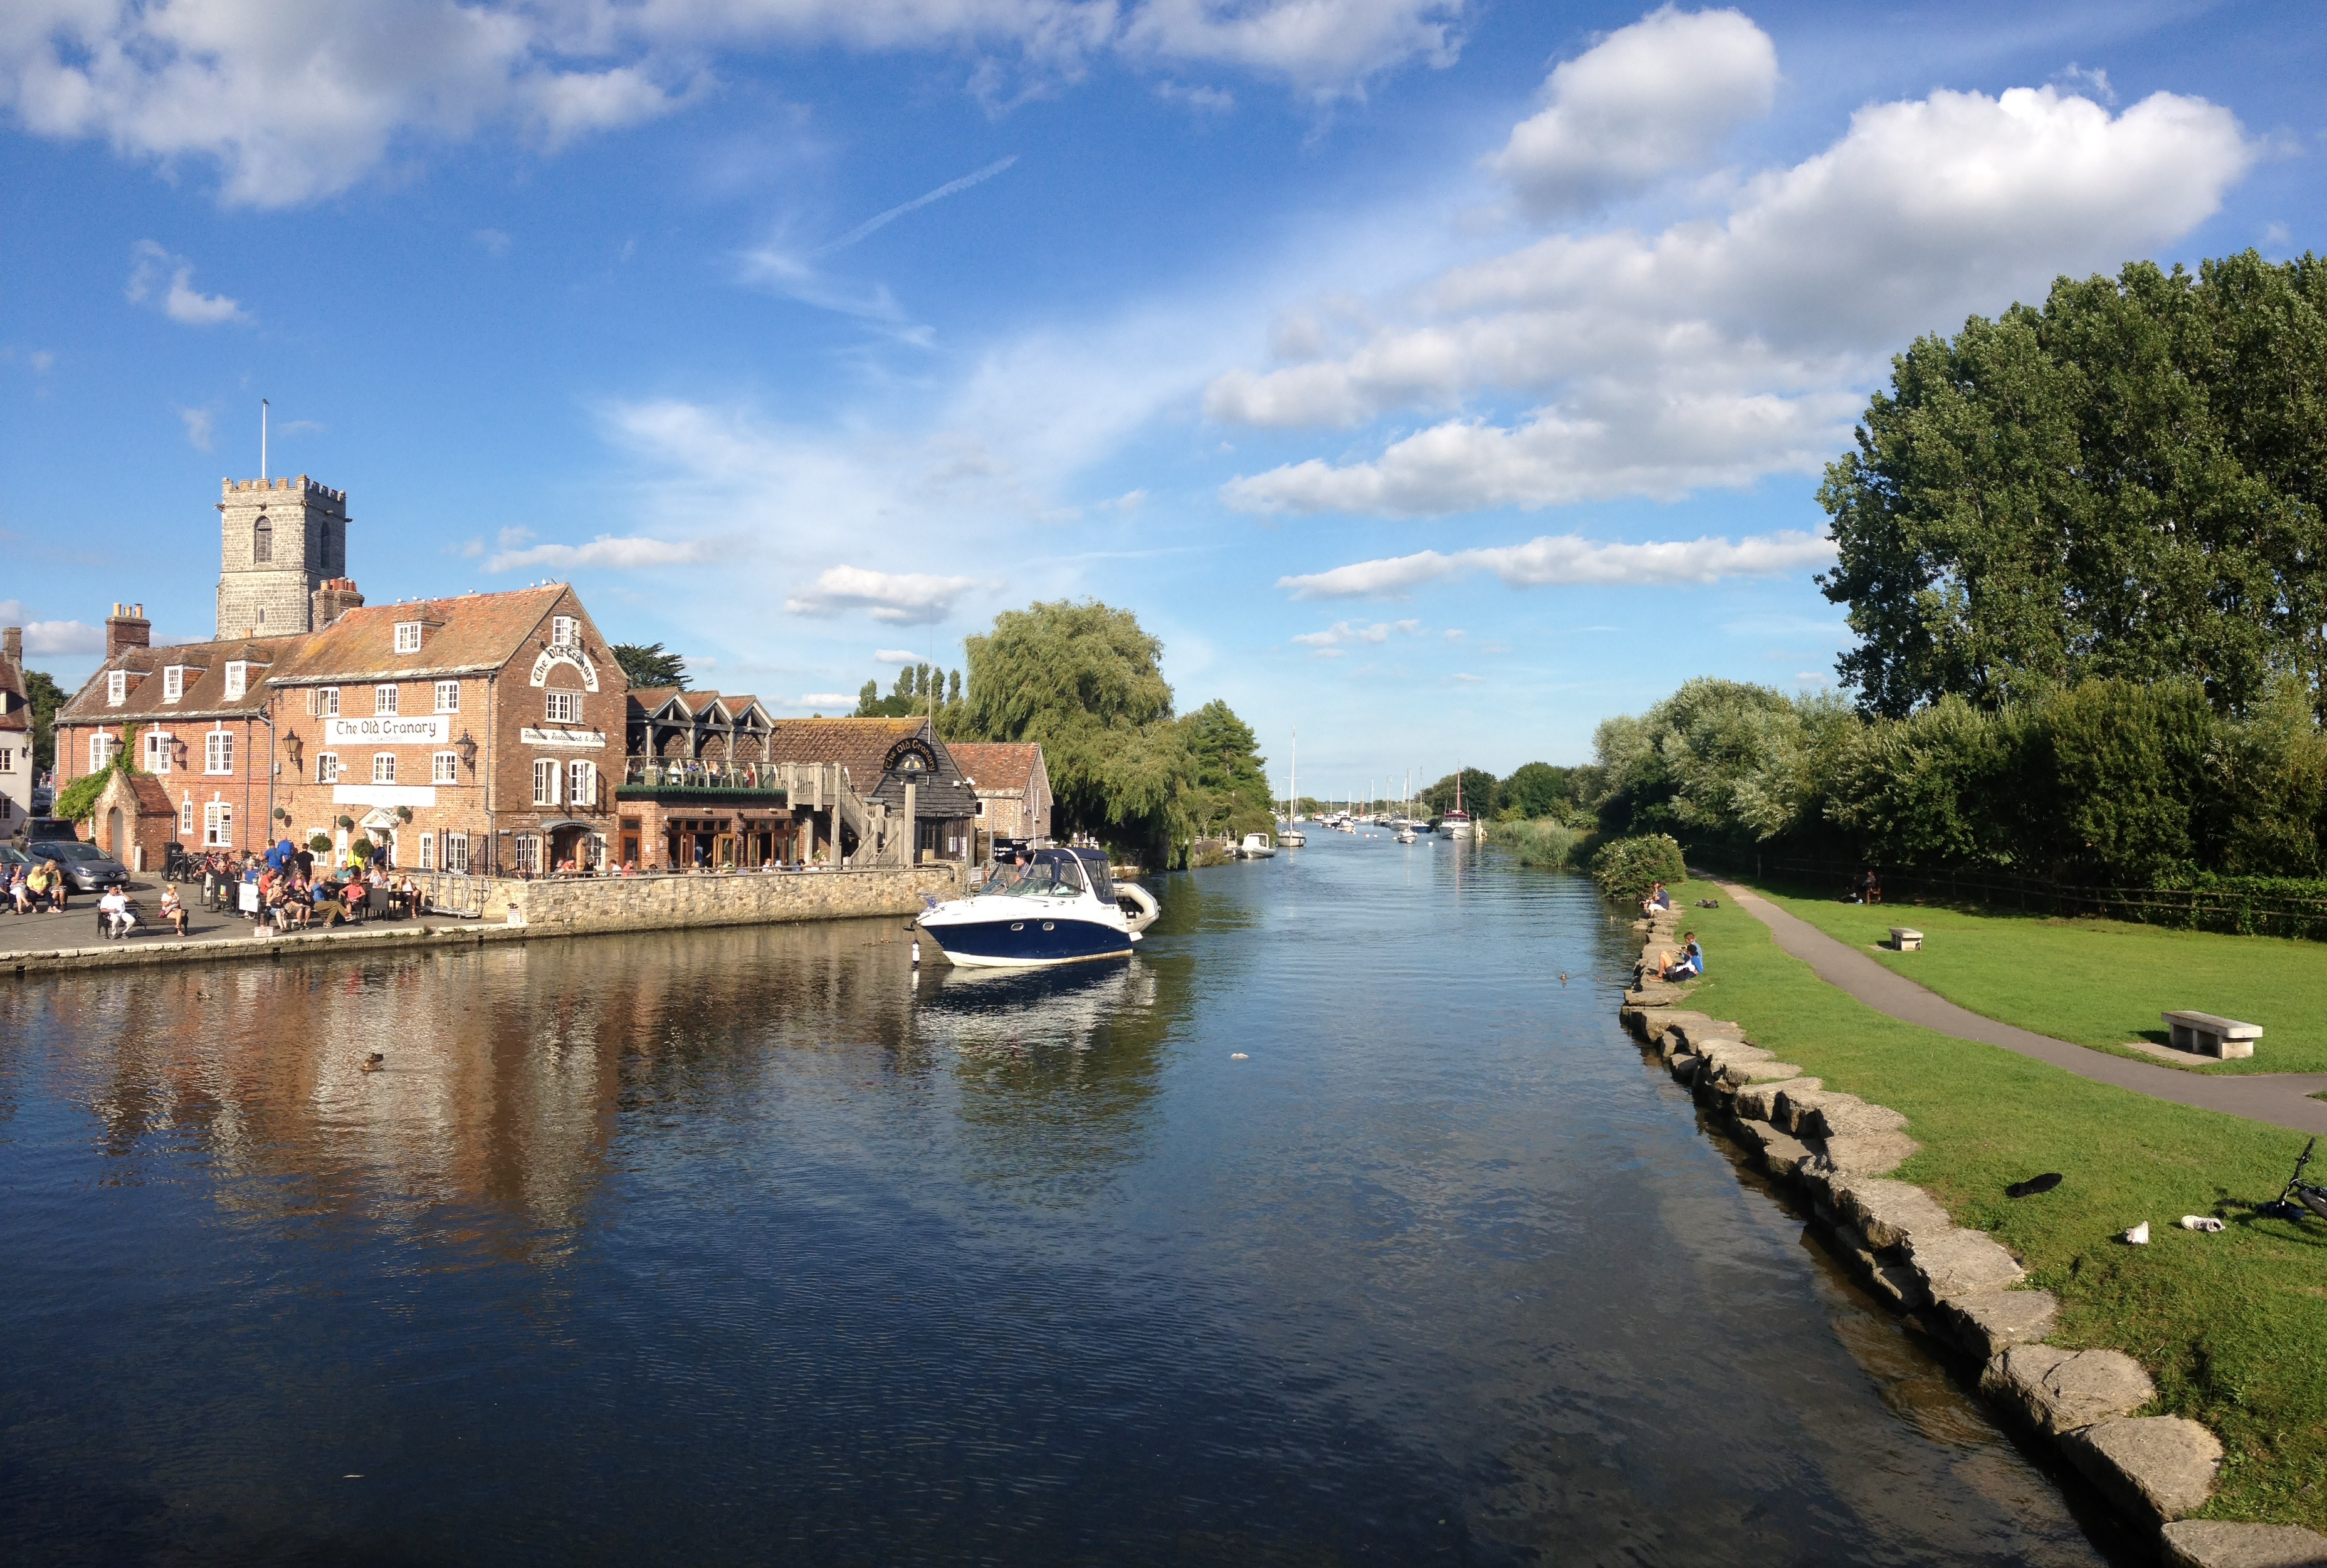 Wareham Quay by The Pink House Lulworth